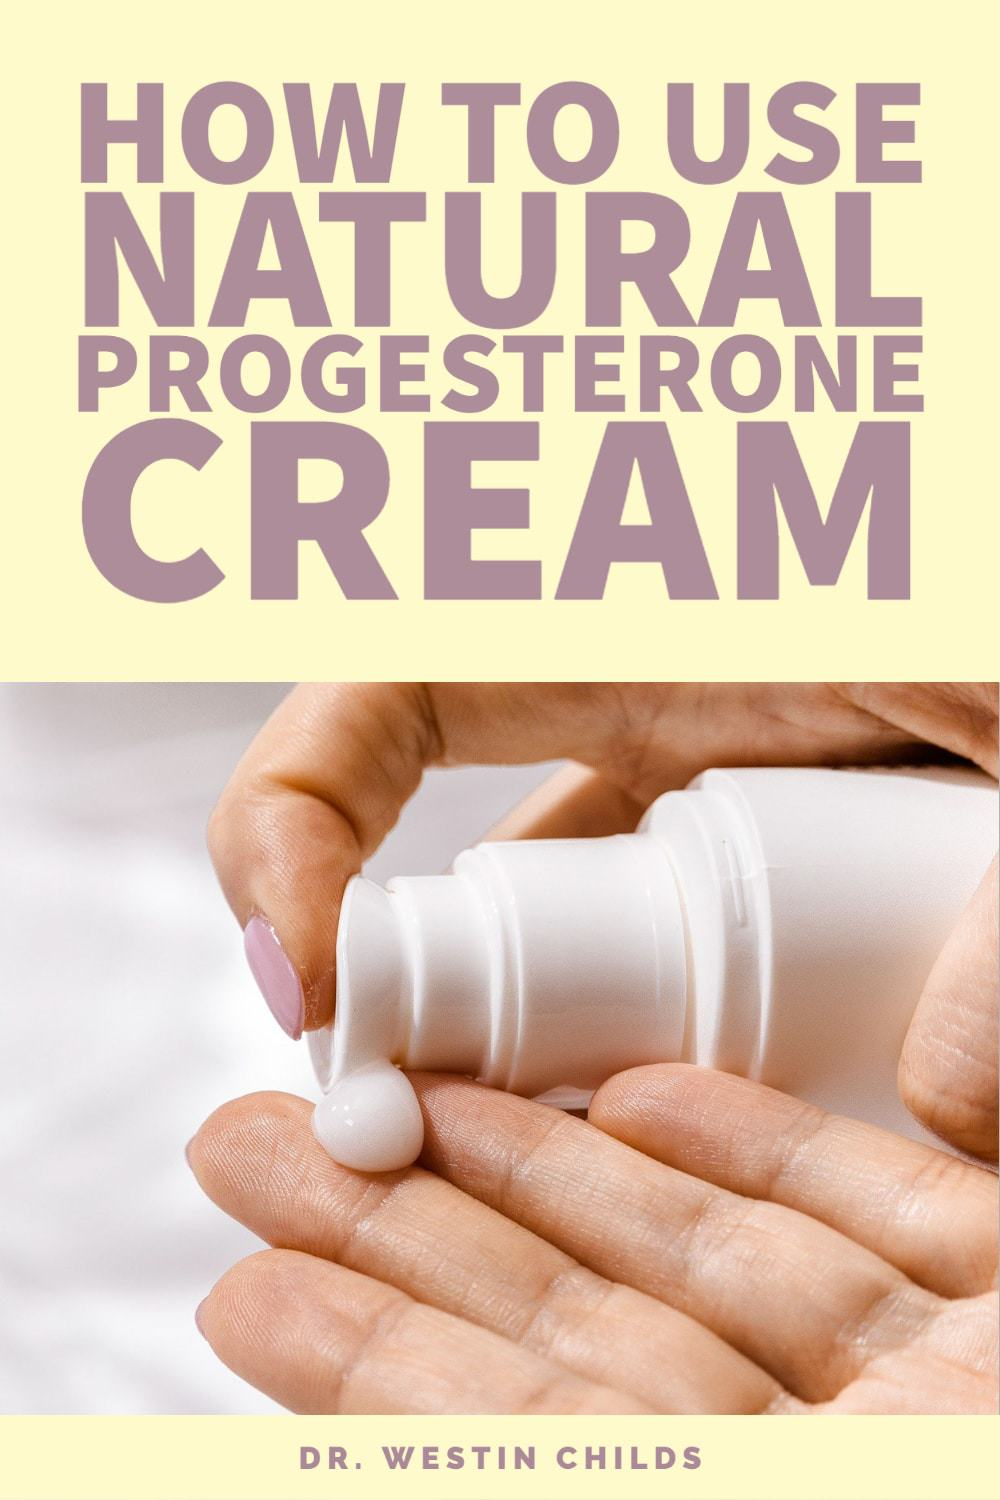 how to use natural progesterone cream for women